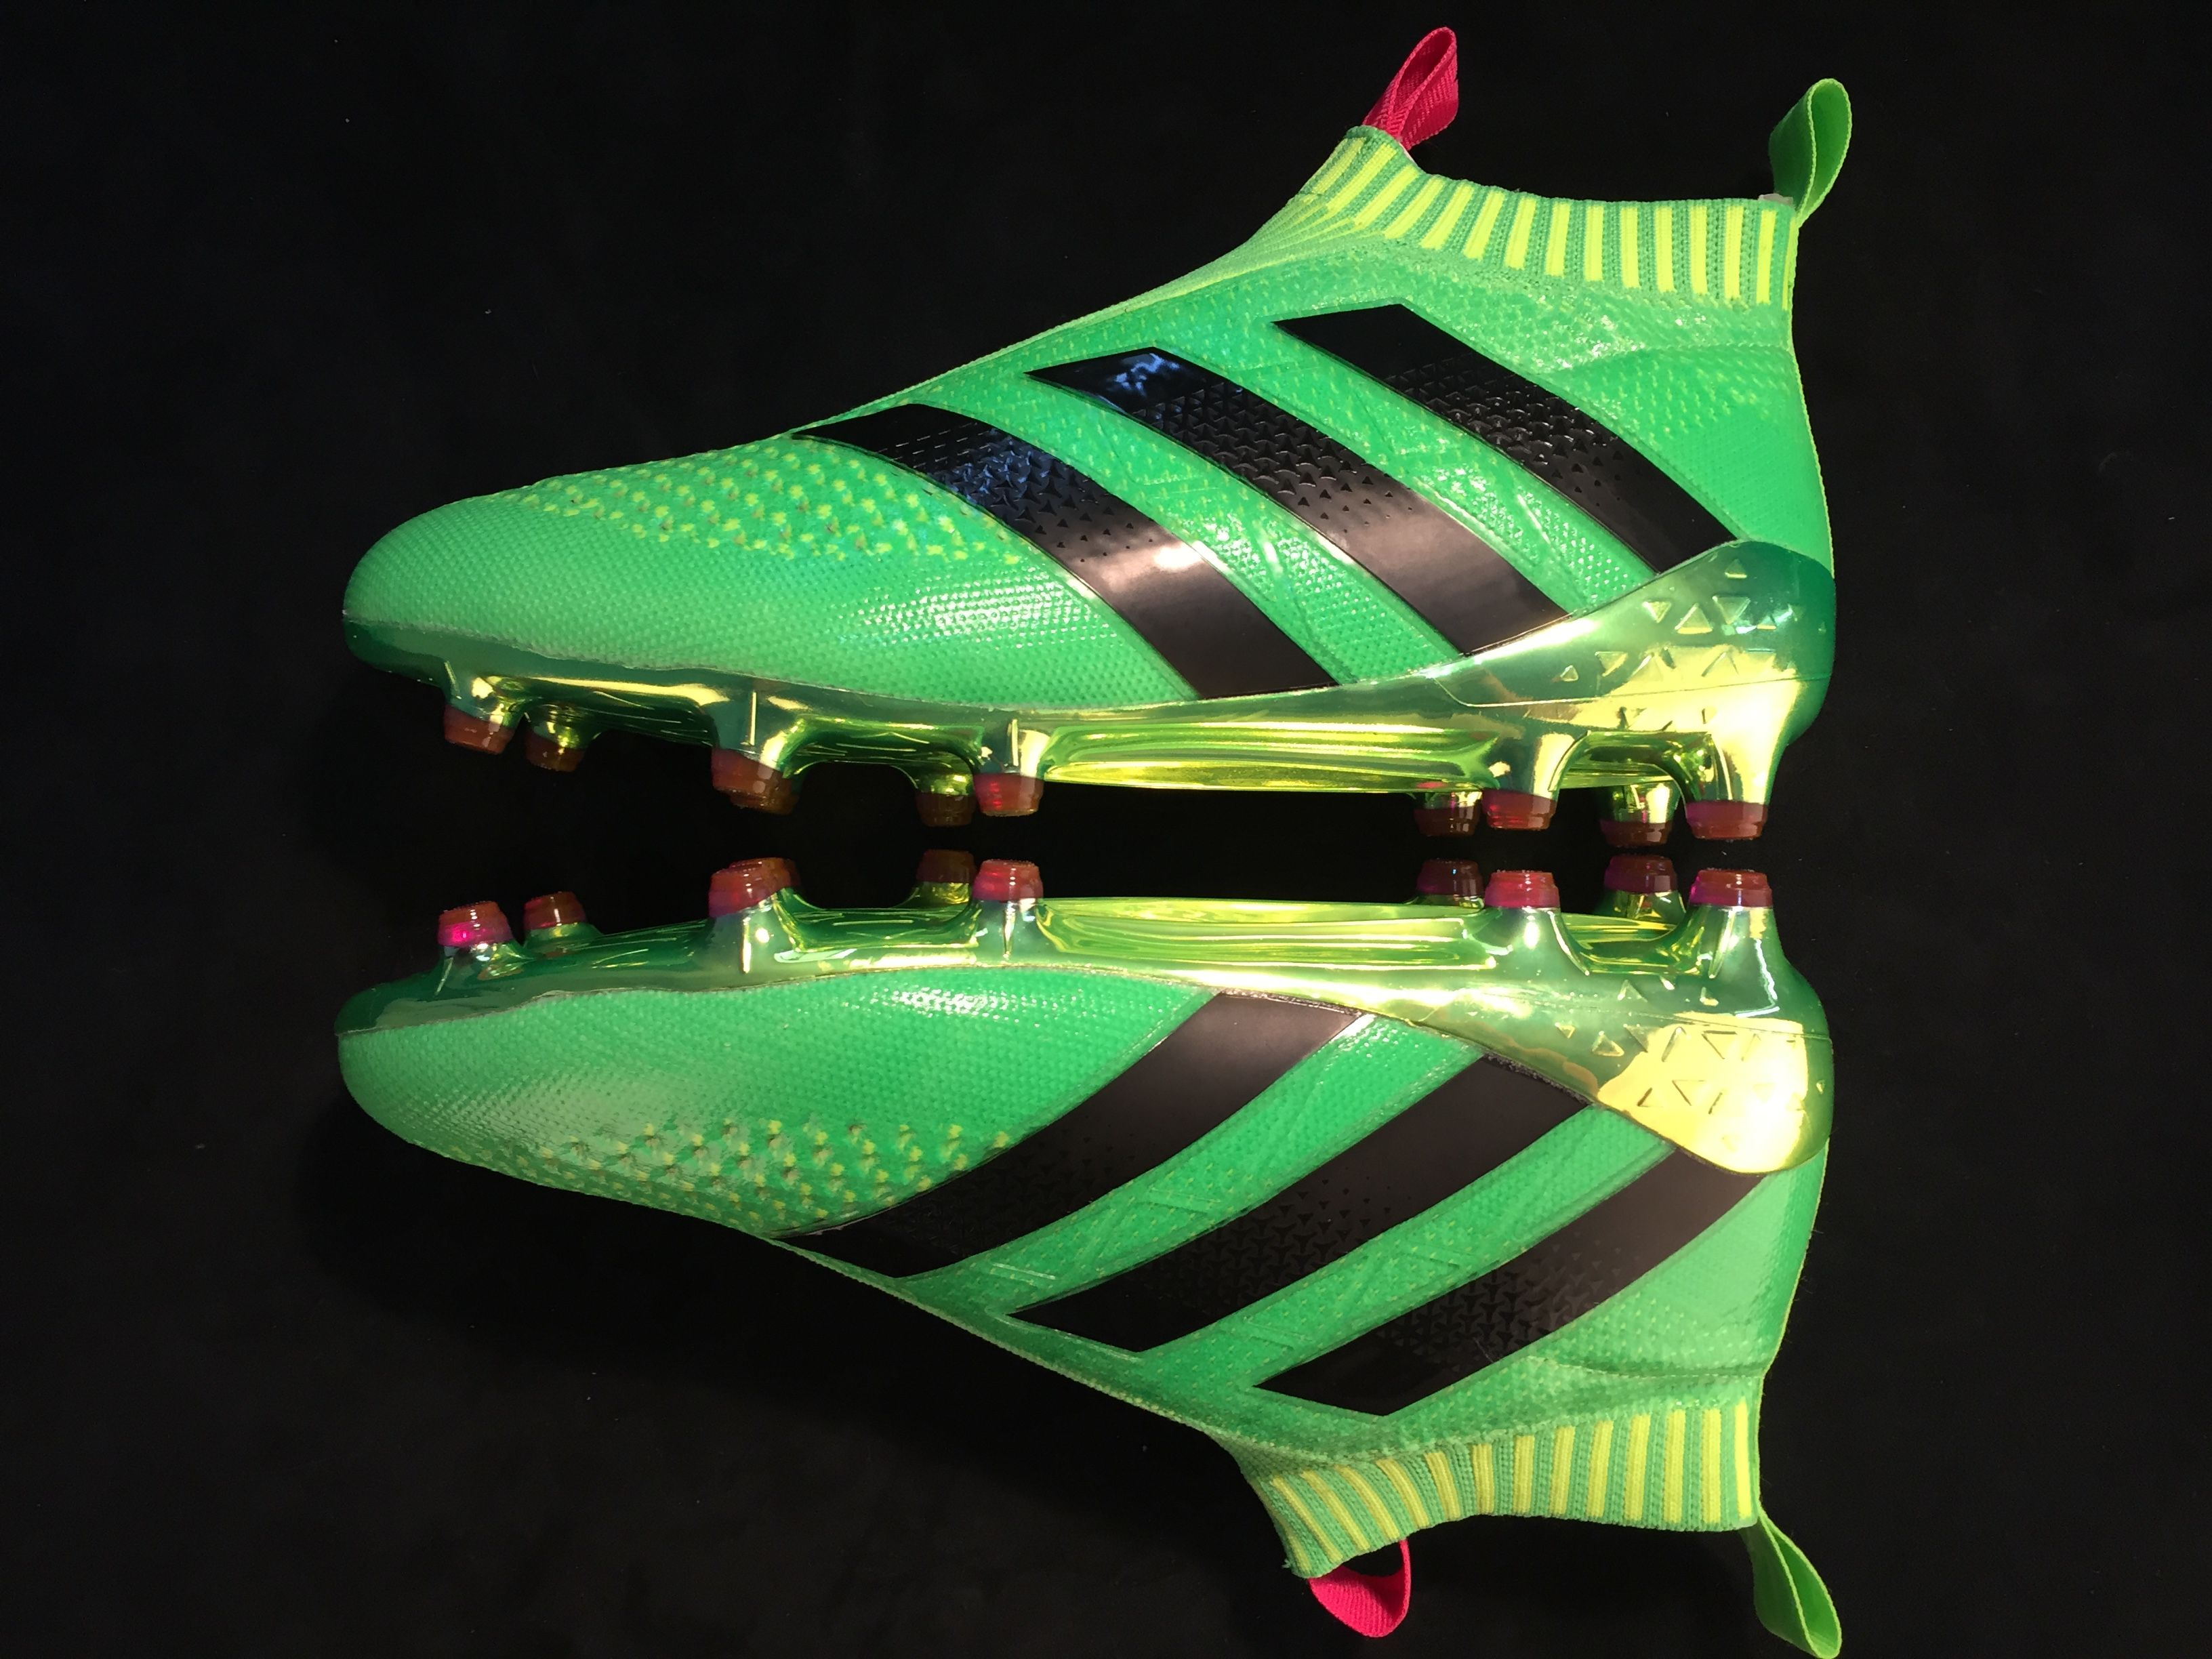 2017 Adidas Ace16 Purecontrol TF Football Boots Black Green Online